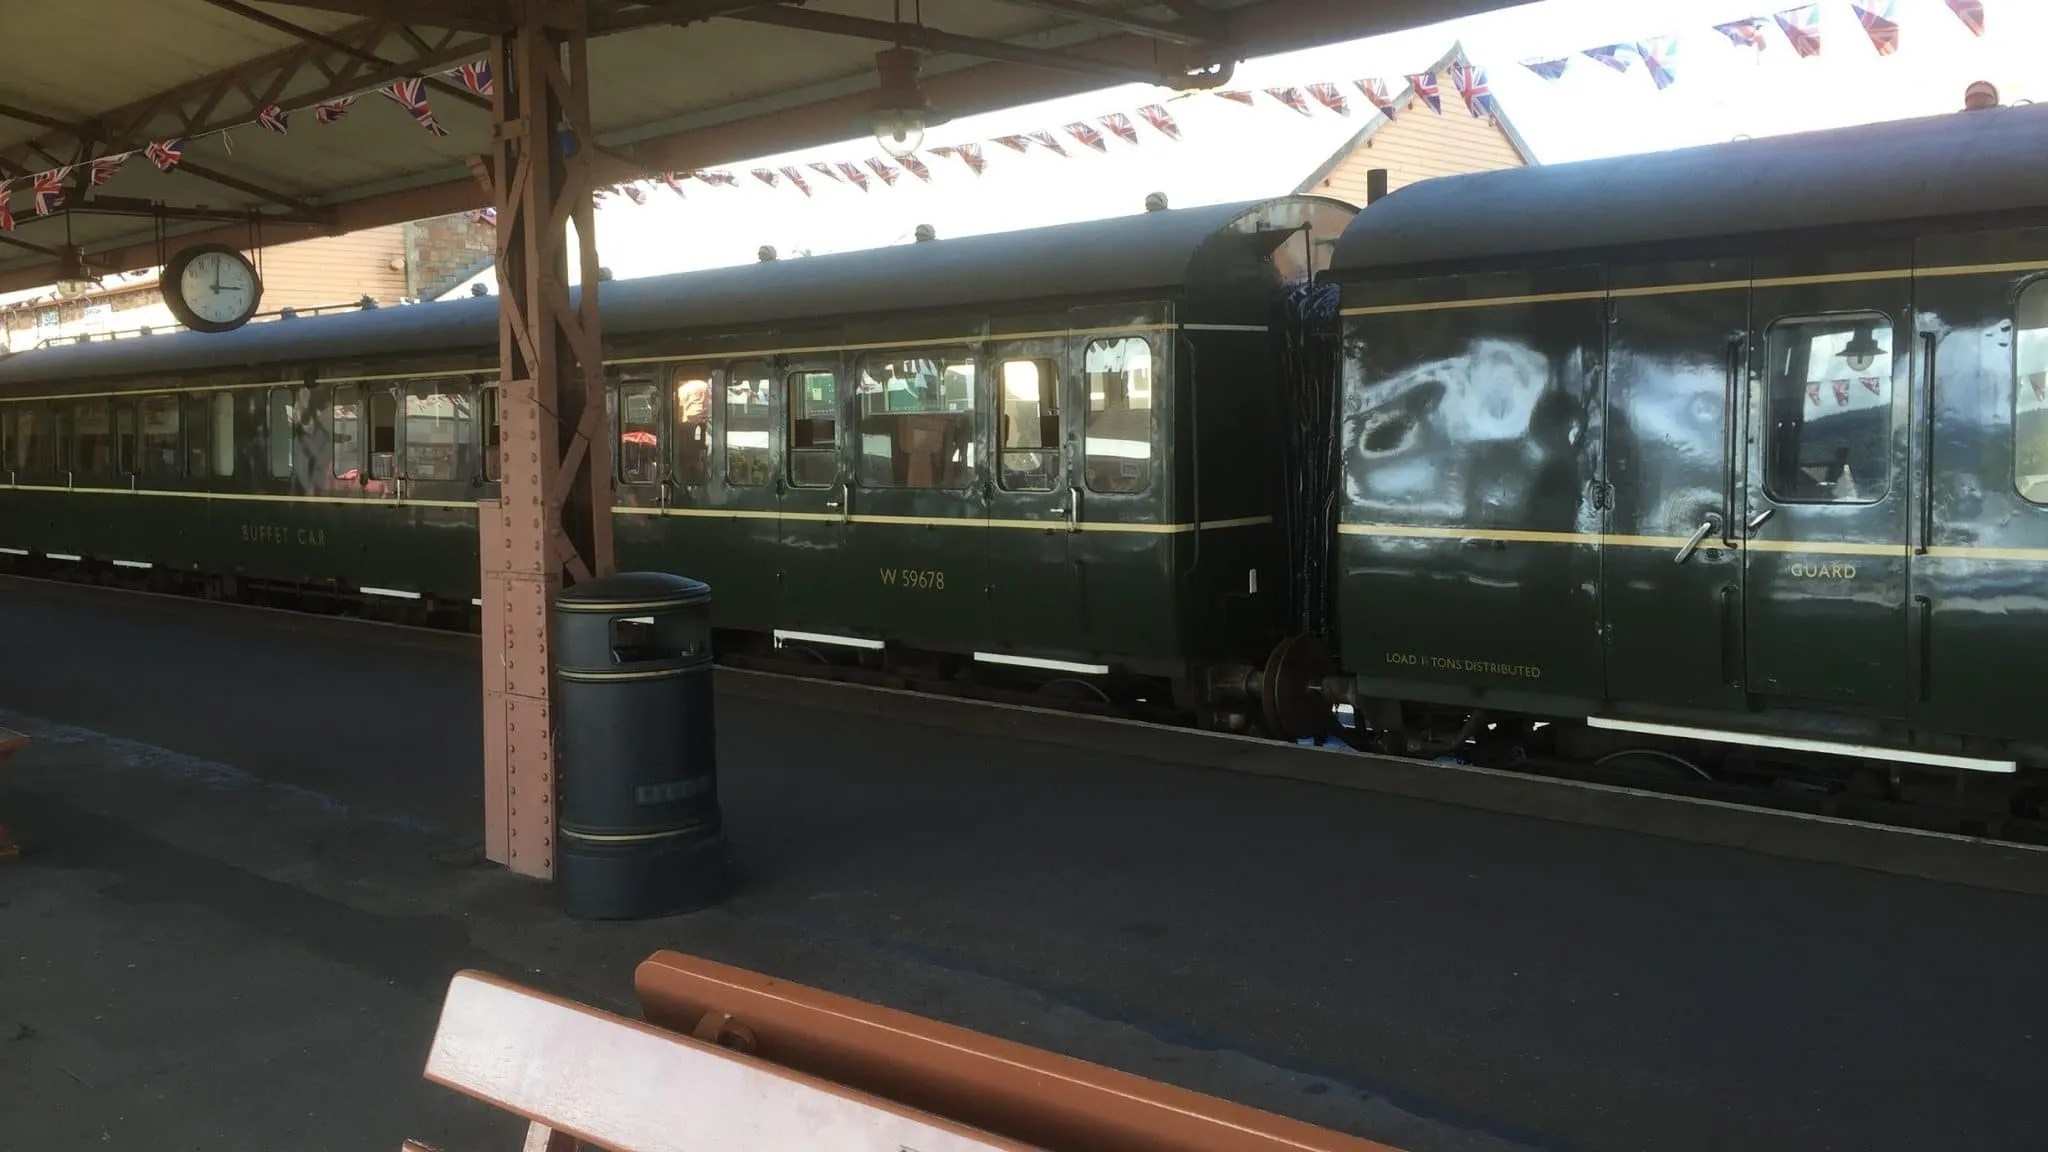 Class 115 DMU now equipped with buffet car at Minehead on the West Somerset Railway